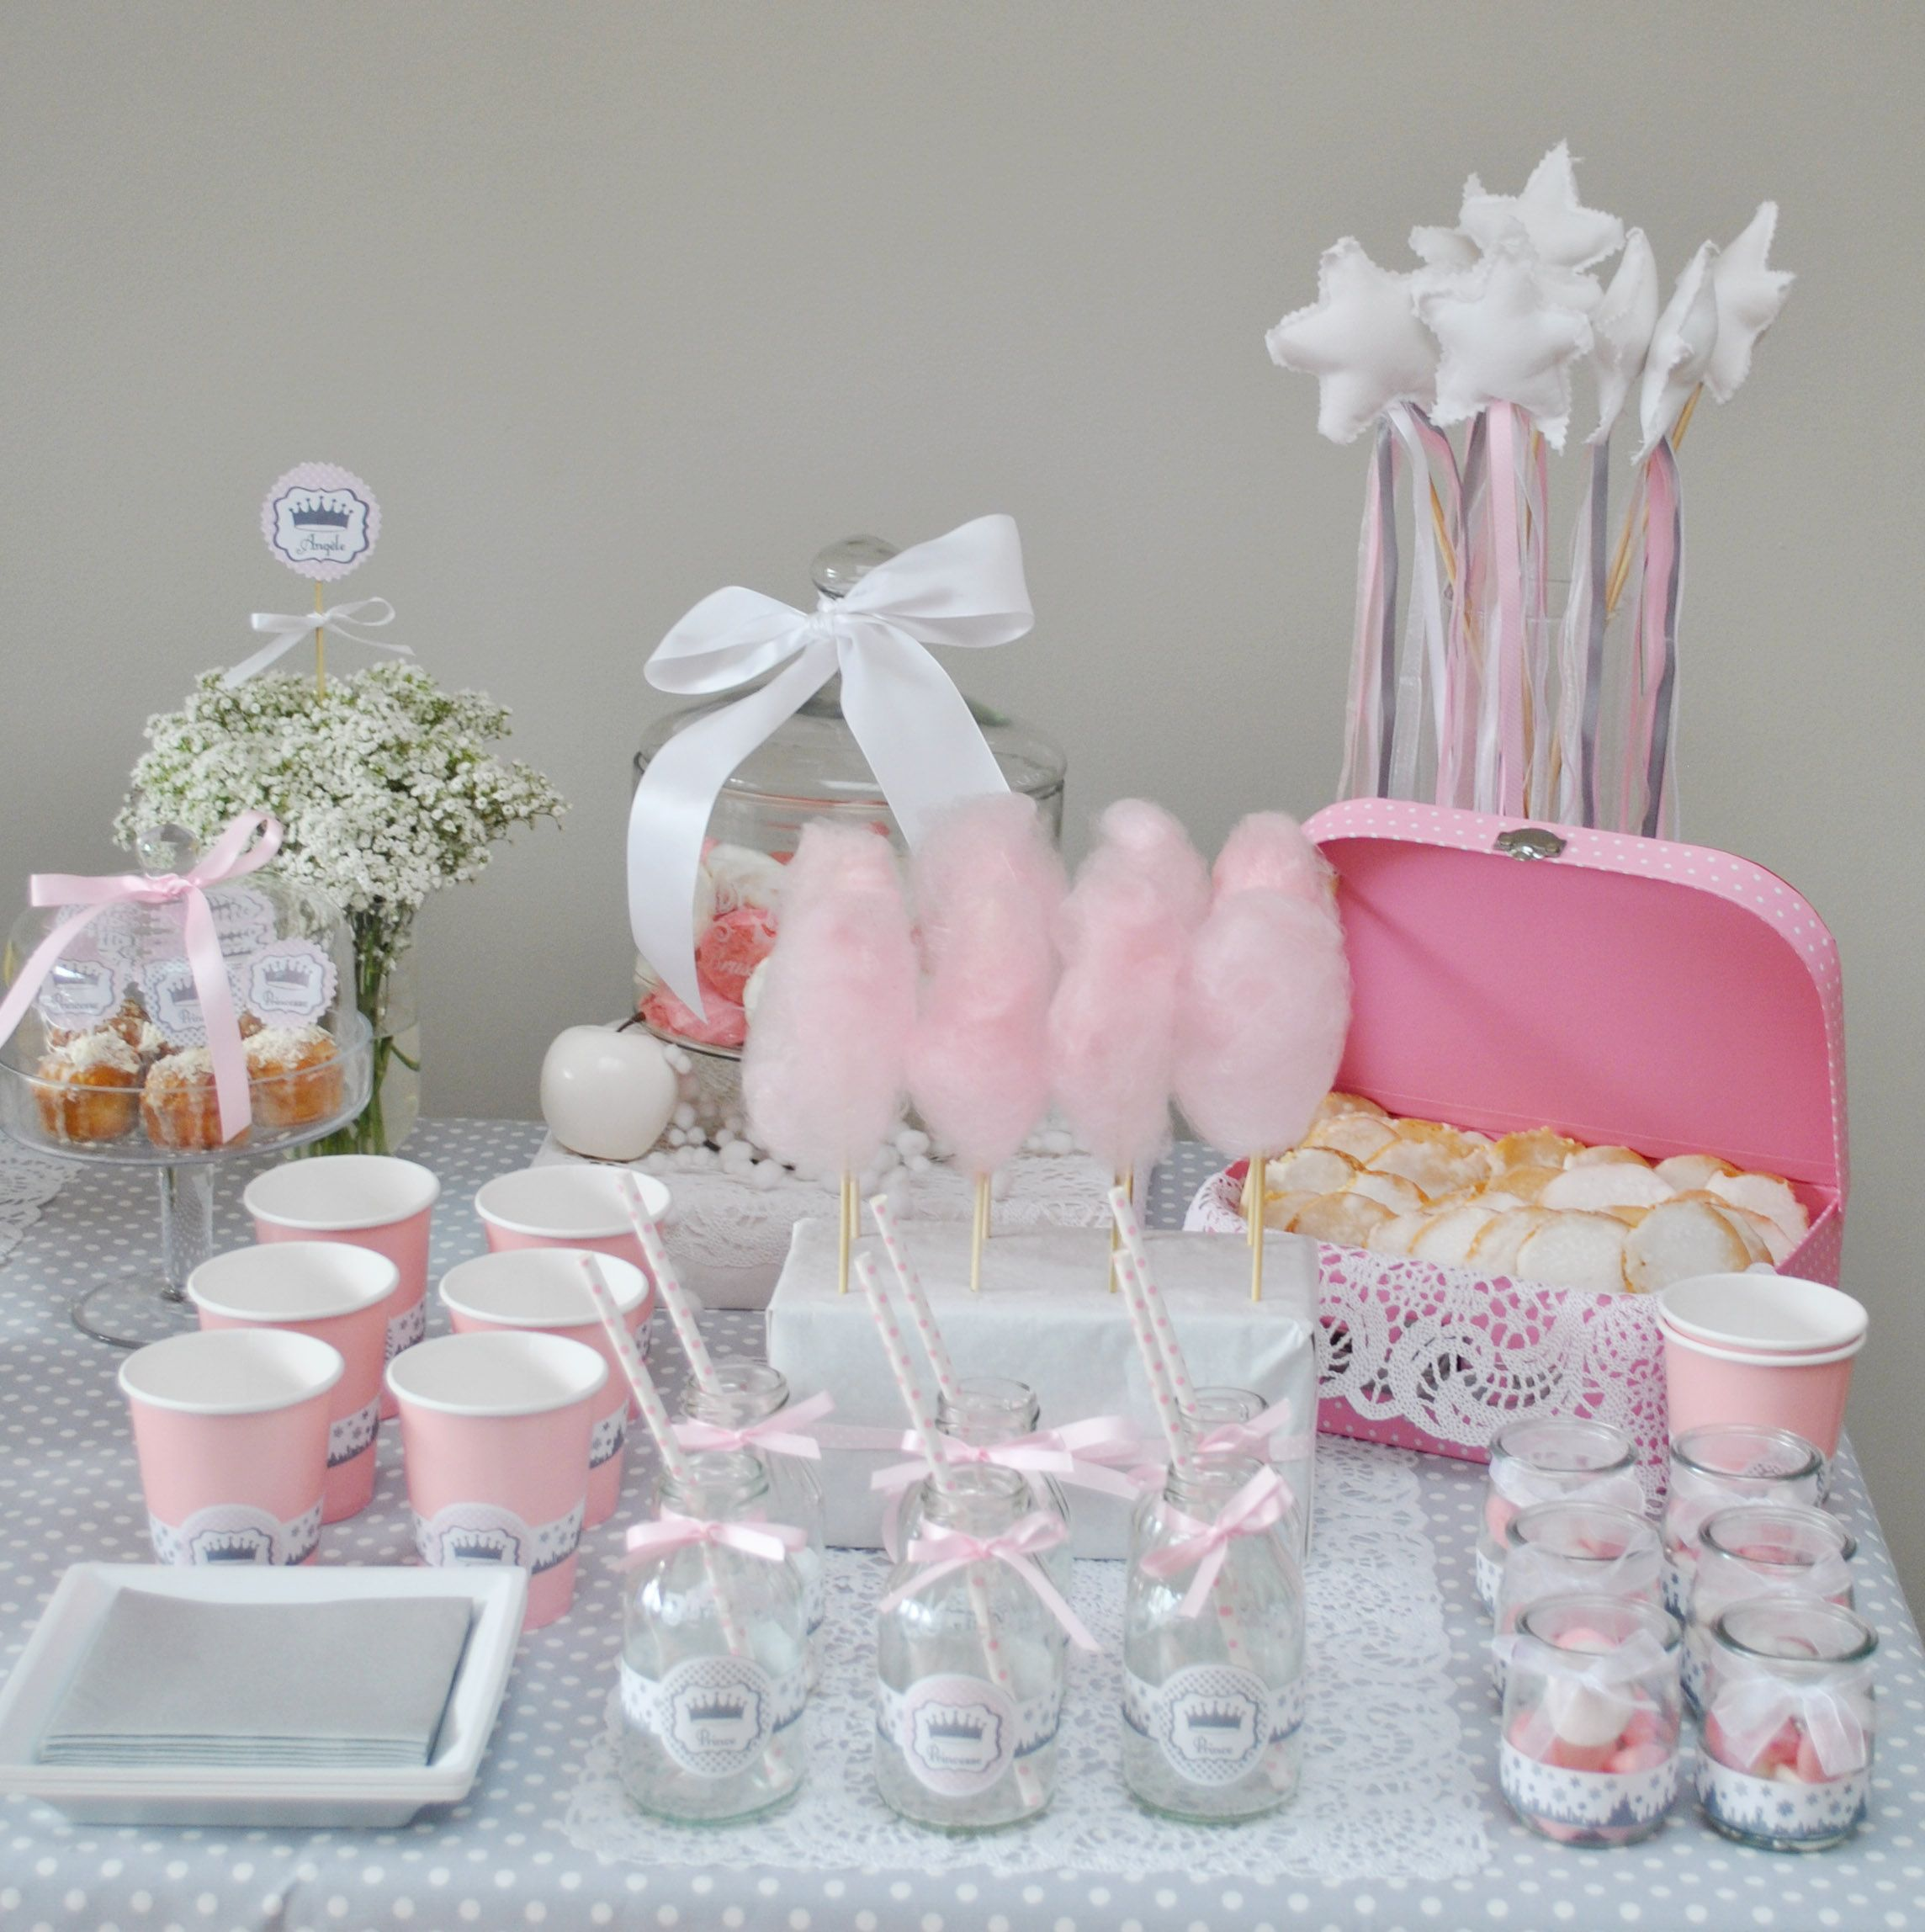 sweet table baby shower baby shower pinterest babies babyshower and ballerina baby showers. Black Bedroom Furniture Sets. Home Design Ideas